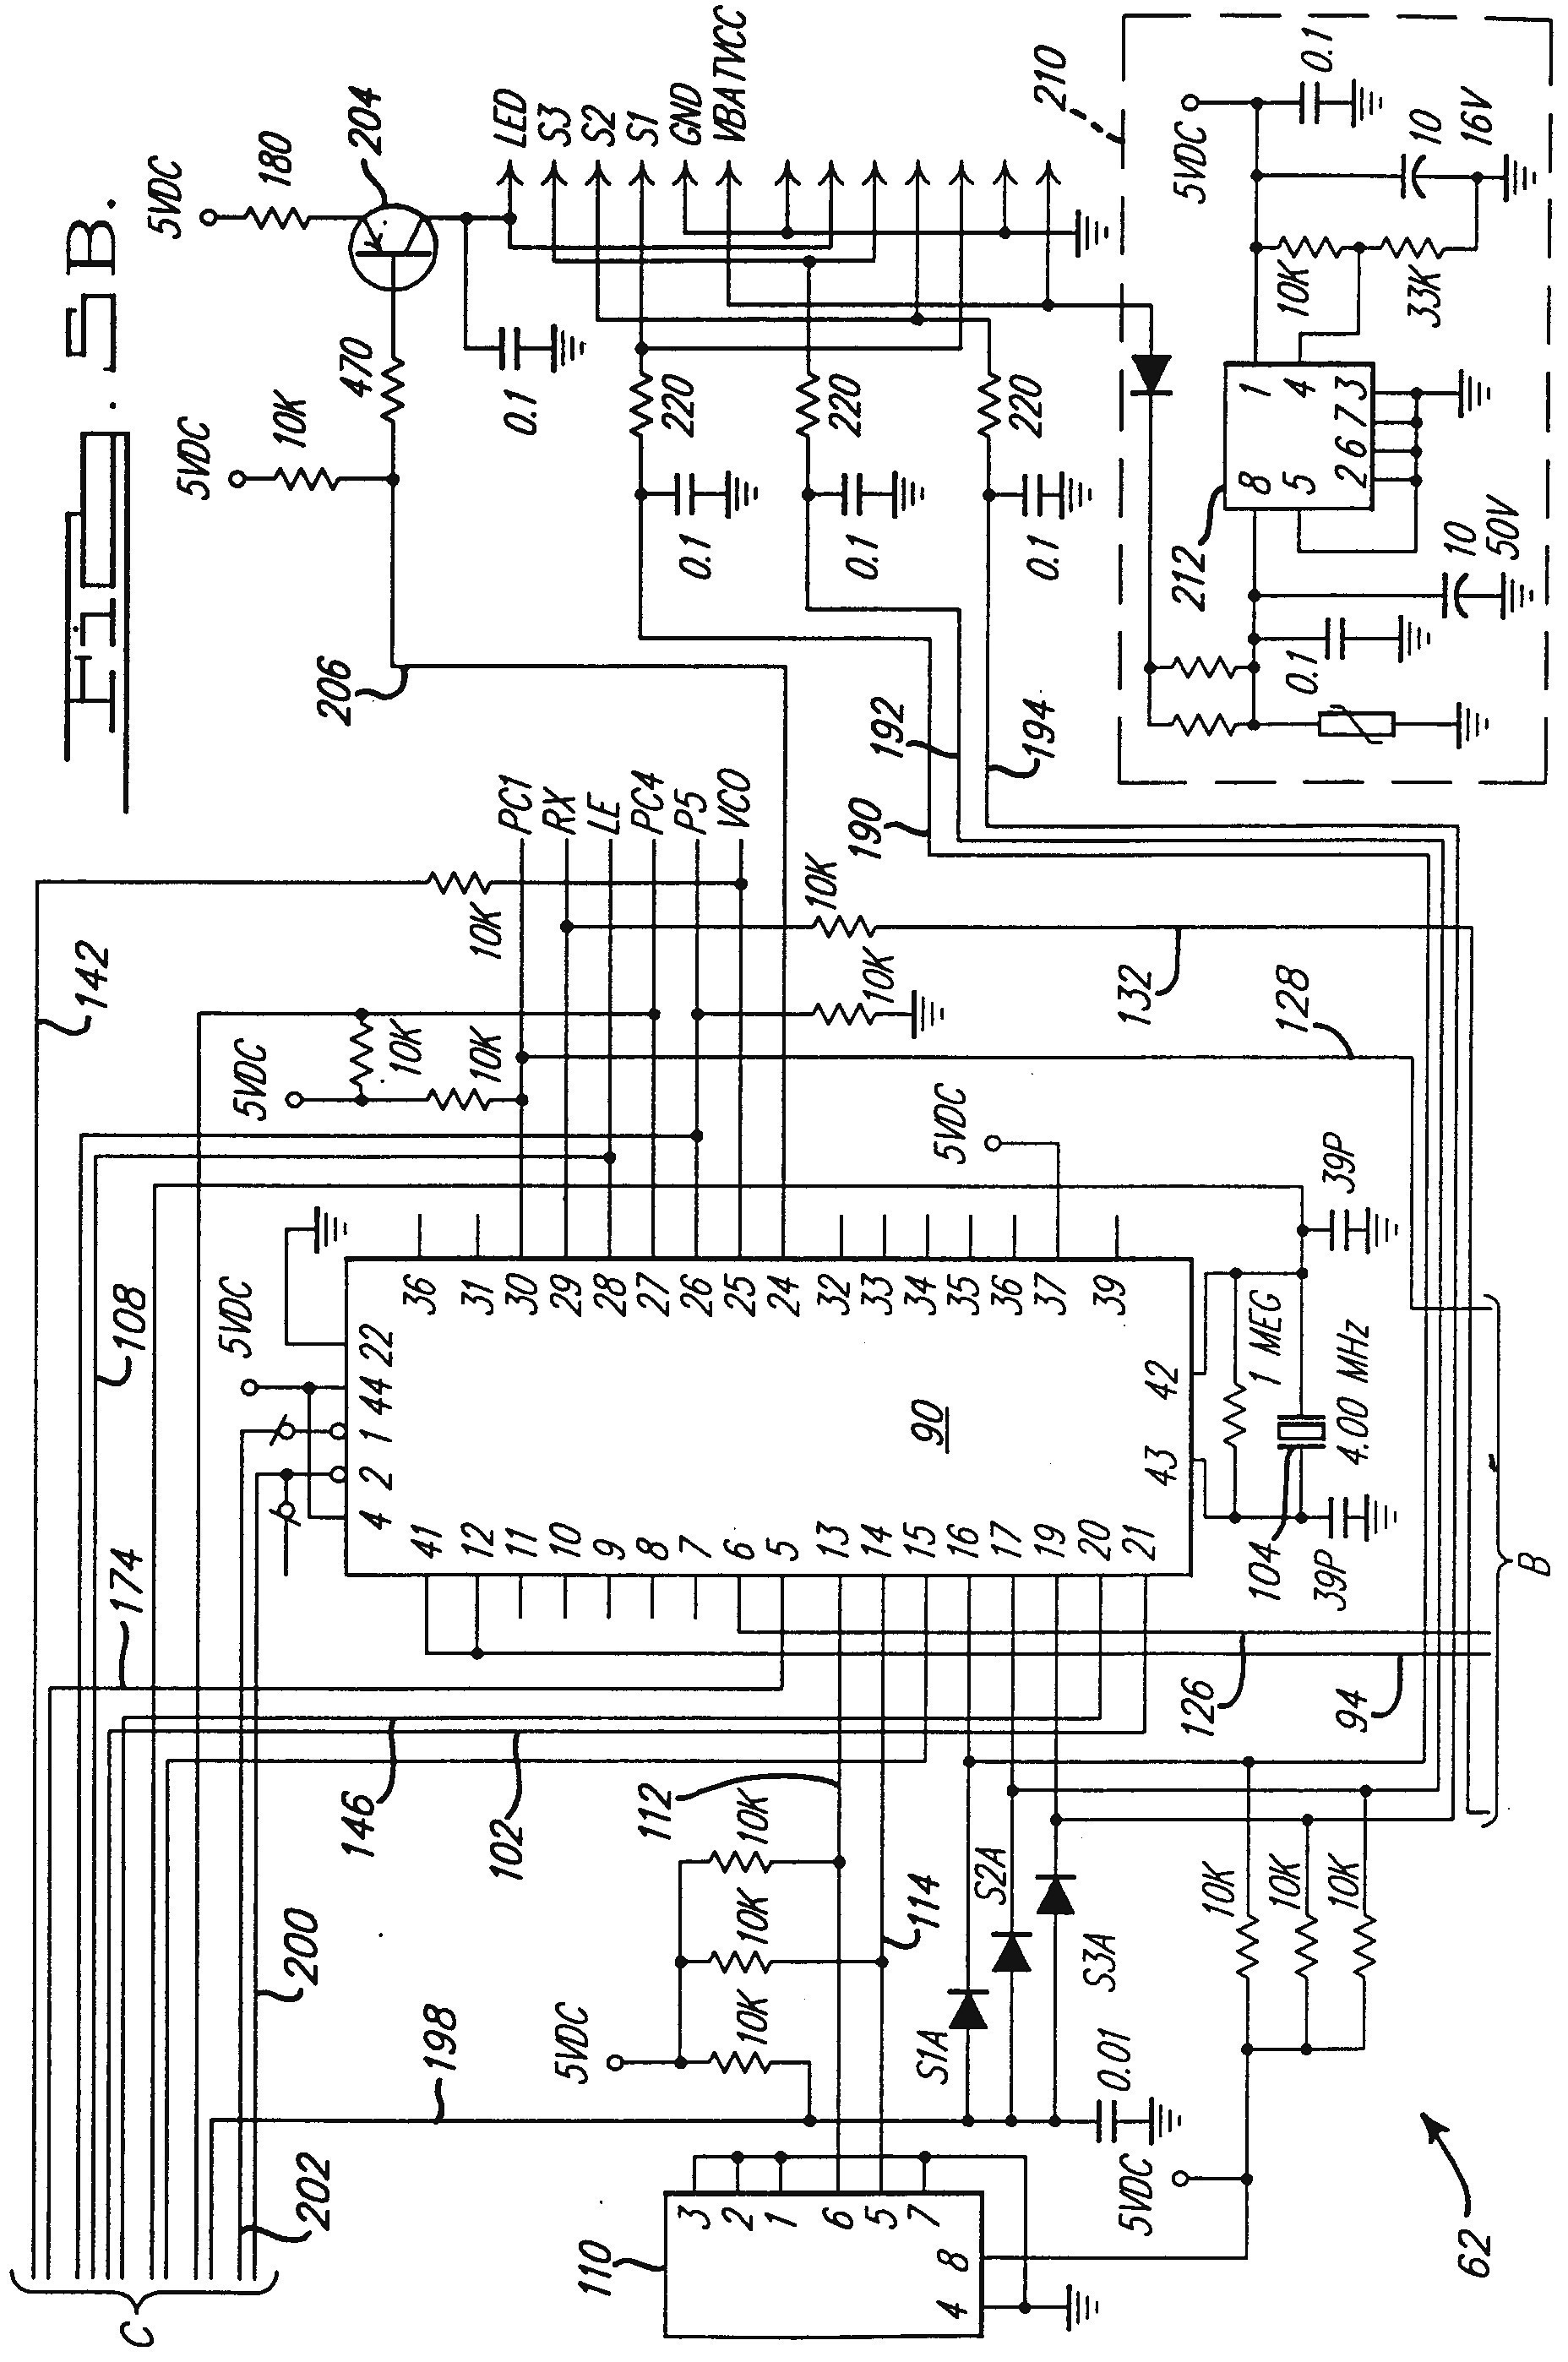 Wiring Garage Schematics - Wiring Diagrams List on